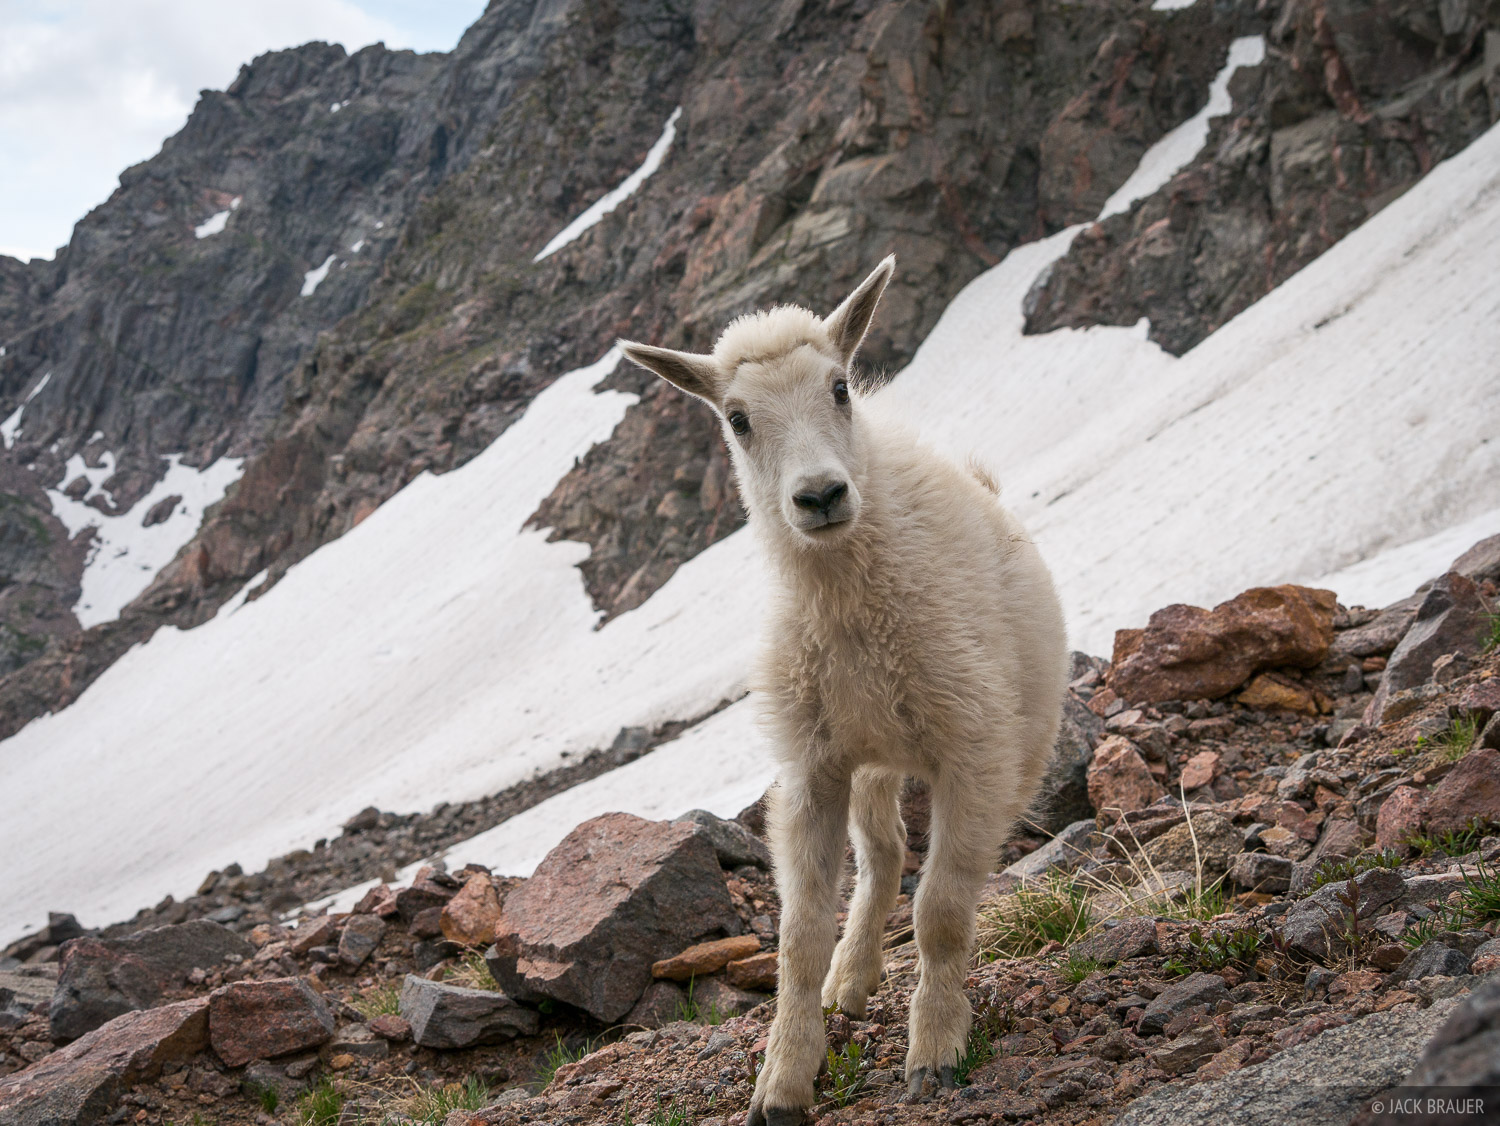 A curious mountain goat kid.